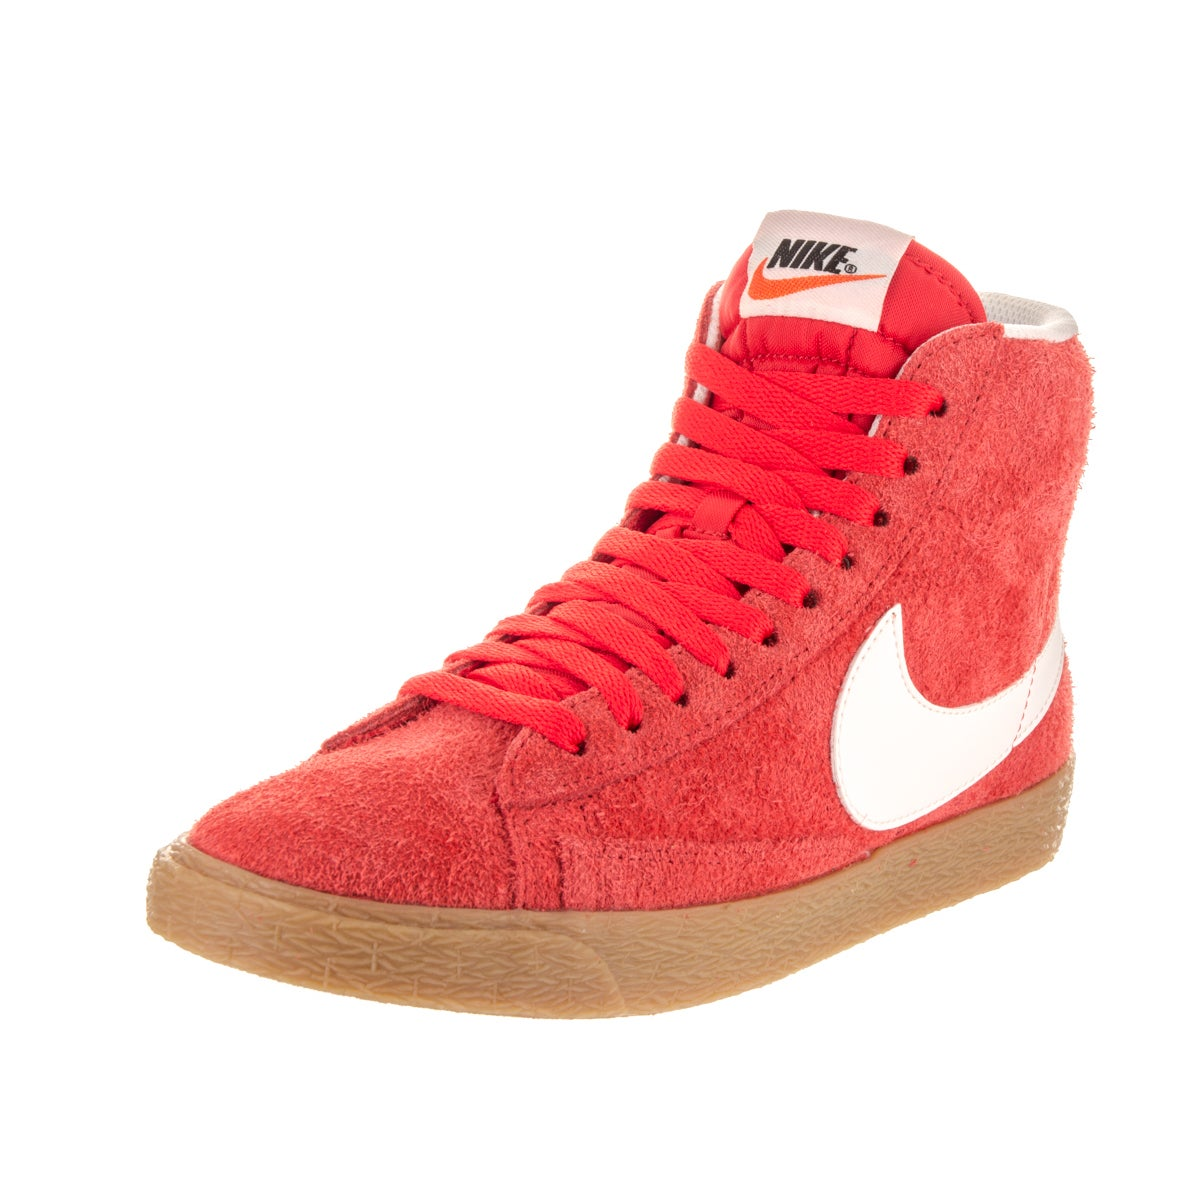 sports shoes 39b36 3134c Shop Nike Women s Blazer Orange Suede Vintage Casual Shoes - Free Shipping  Today - Overstock - 14193473